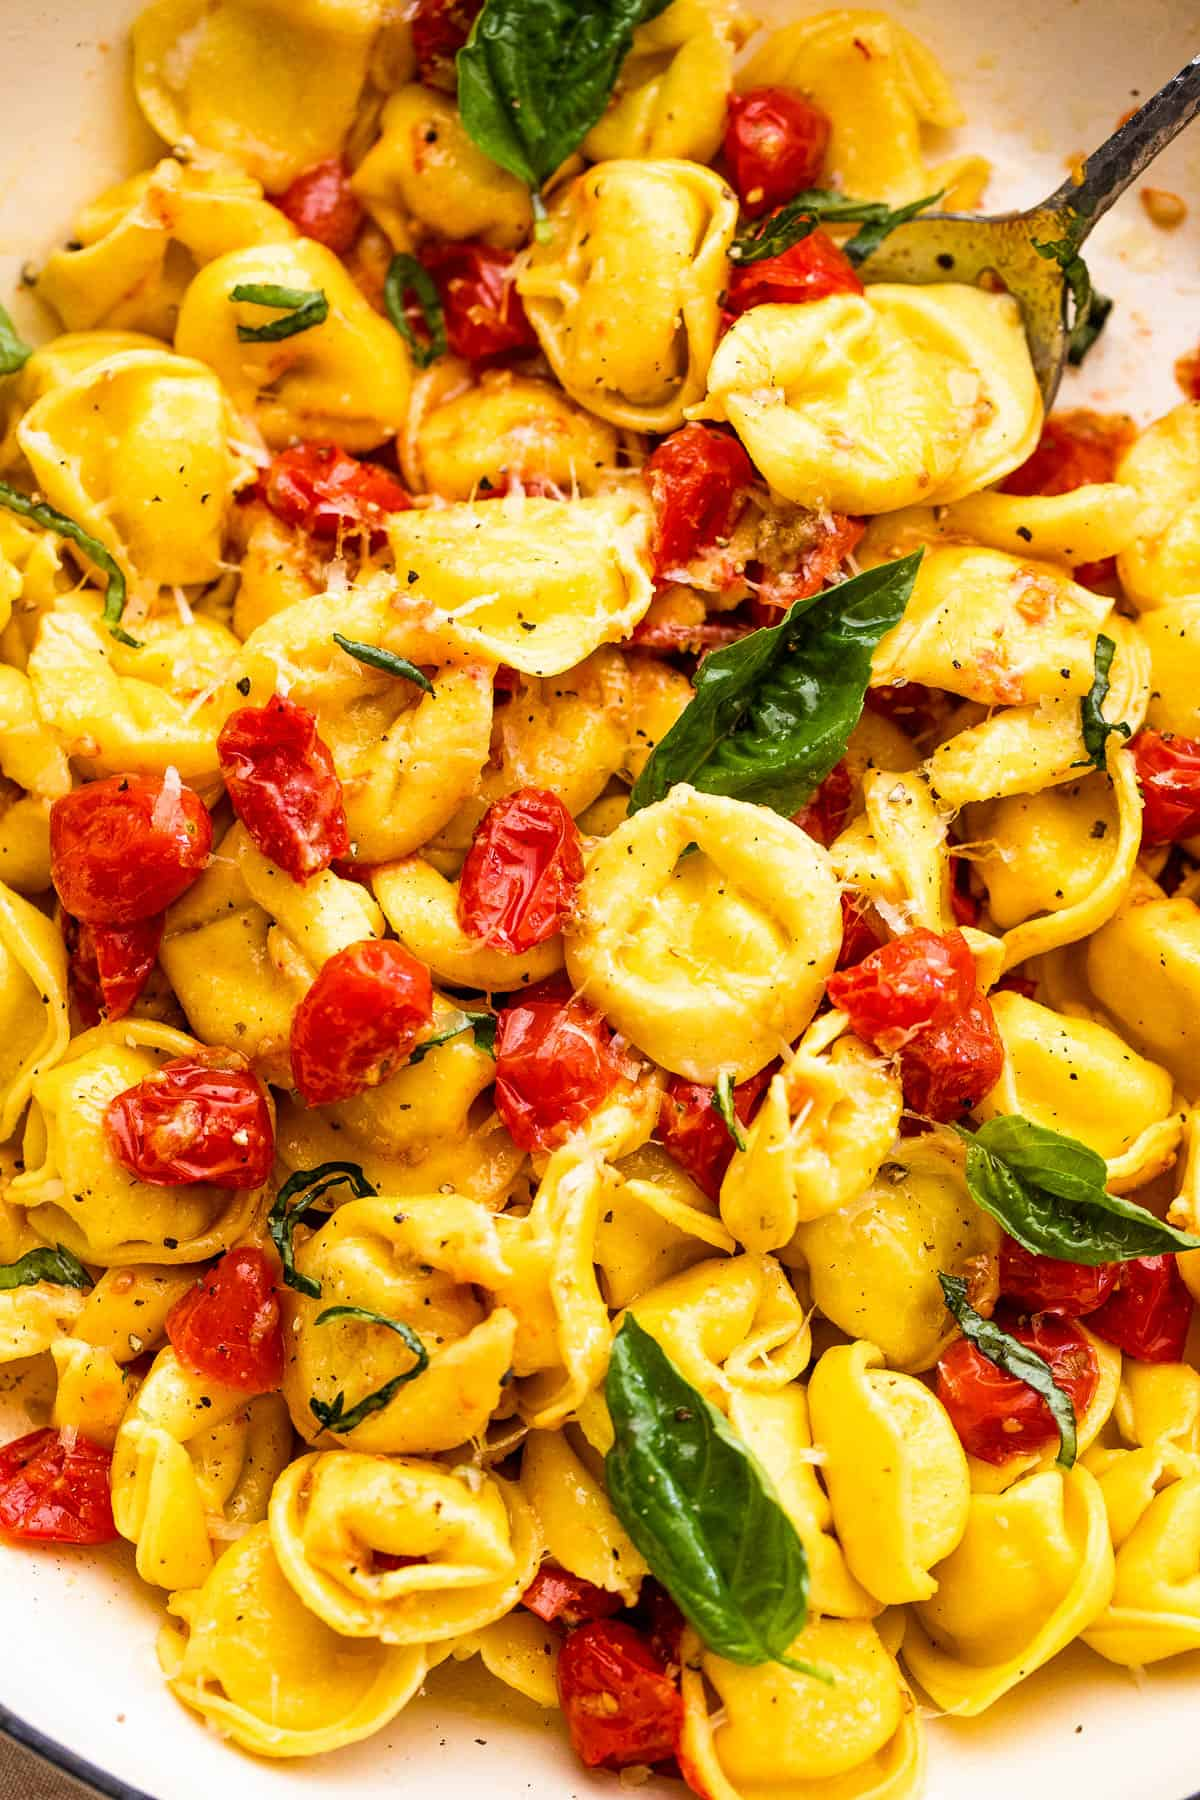 tortellini pasta tossed with cherry tomatoes and garnished with basil leaves